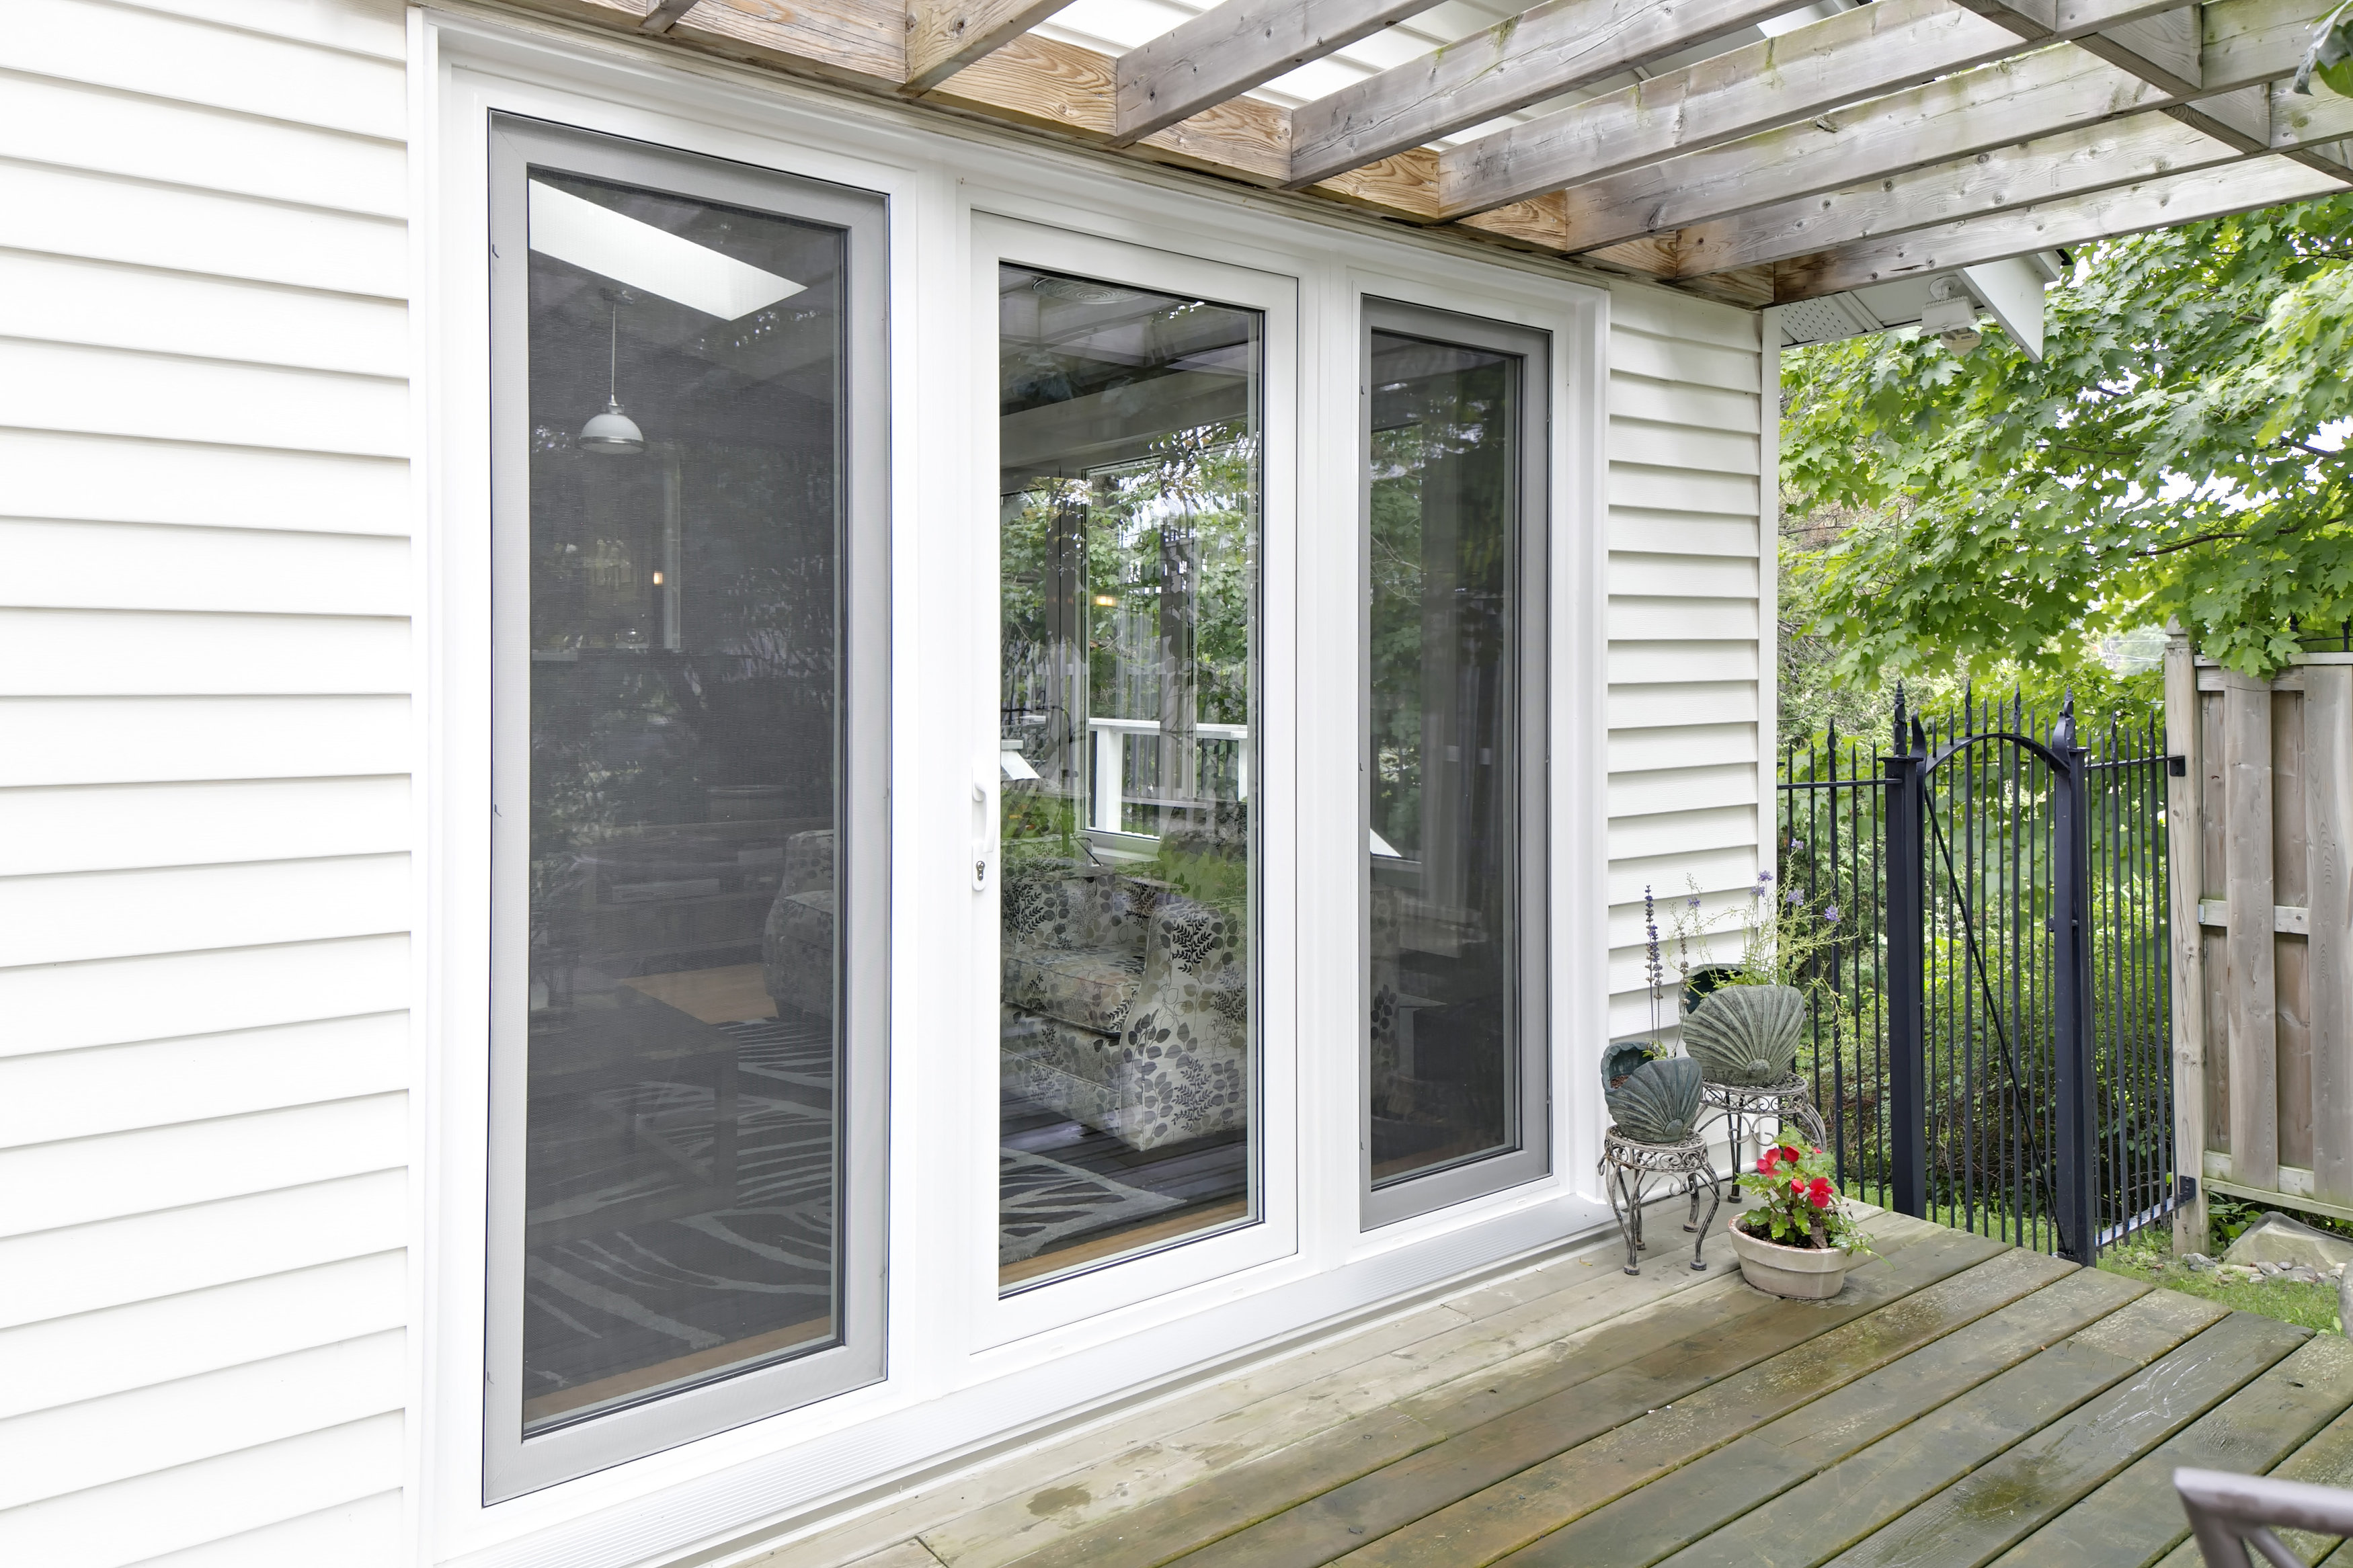 Patio maritime door window for Outside door with window that opens